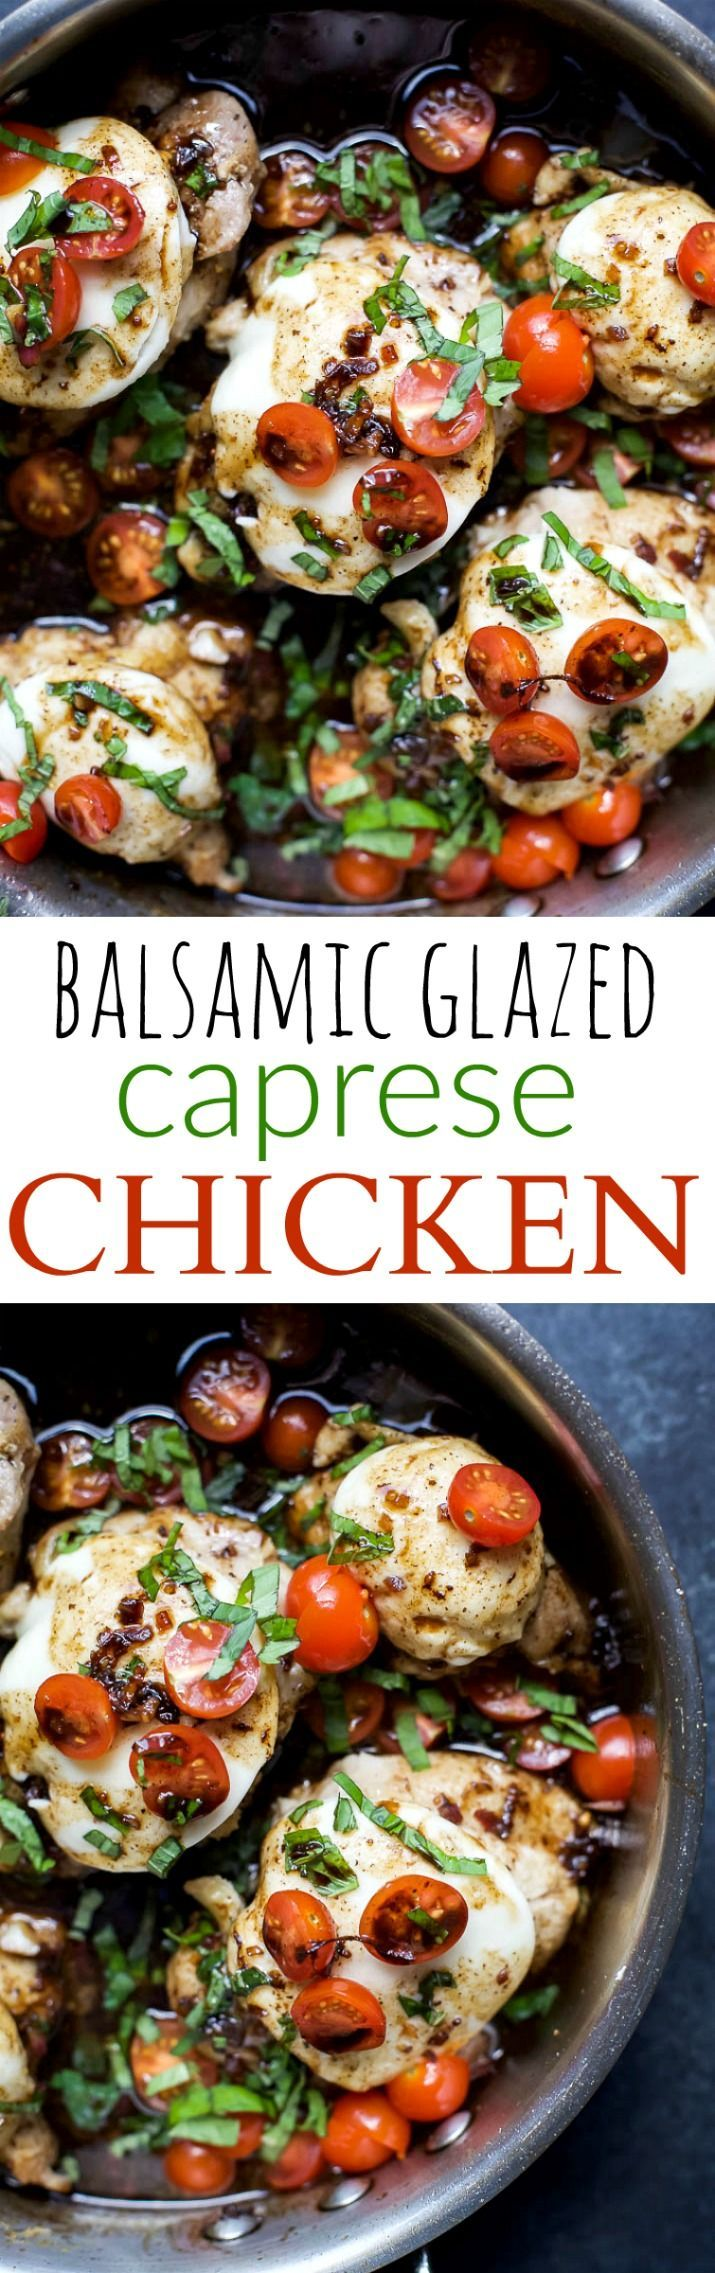 One Pan Balsamic Glazed Caprese Chicken - an easy recipe done in less than 40 minutes. Tender juicy Chicken cooked in balsamic glaze. I guarantee your family will be begging for you to make this again! | joyfulhealthyeats.com #glutenfree #highprotein